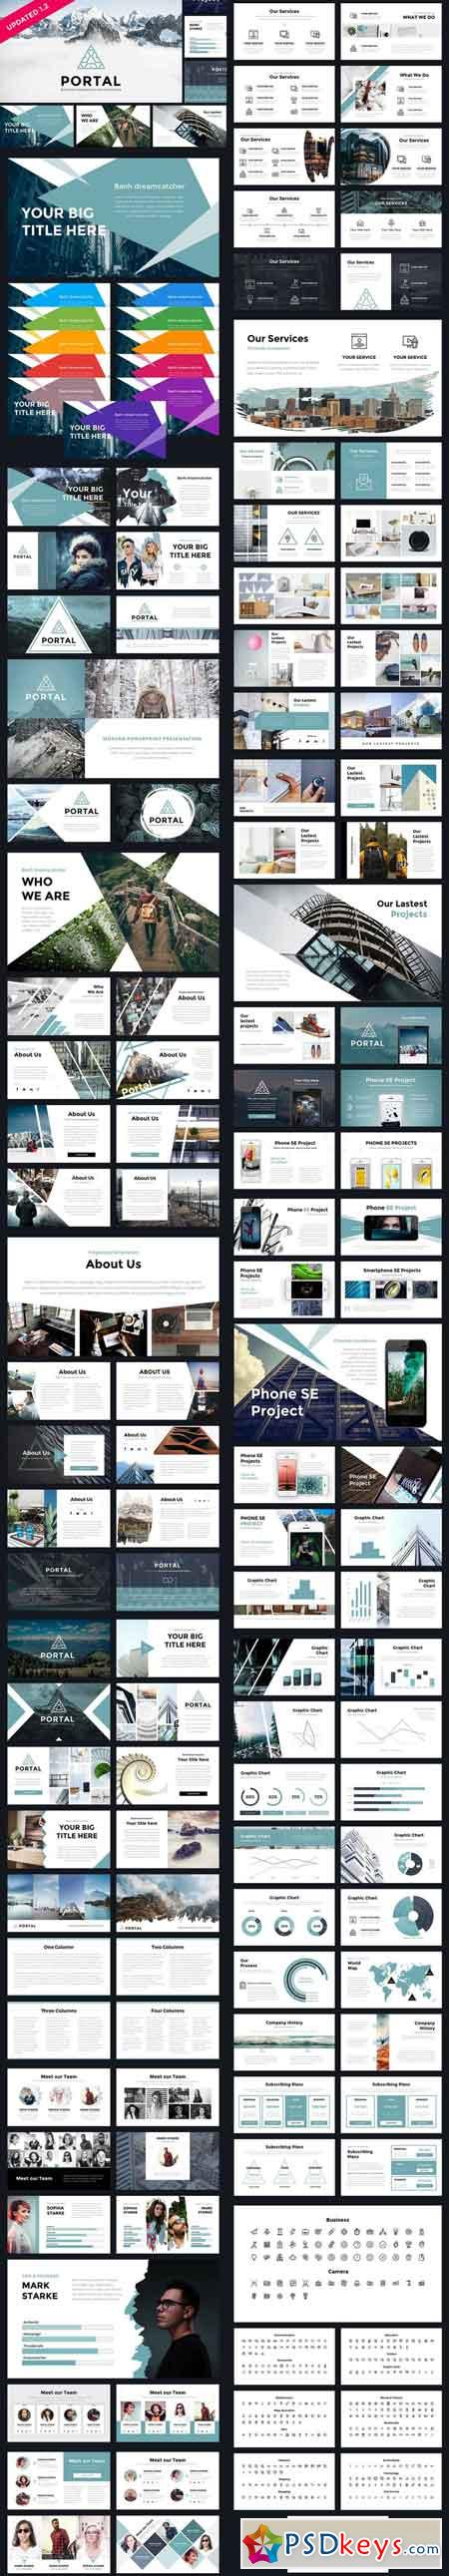 Portal Modern Powerpoint Template 845789 Free Download Photoshop